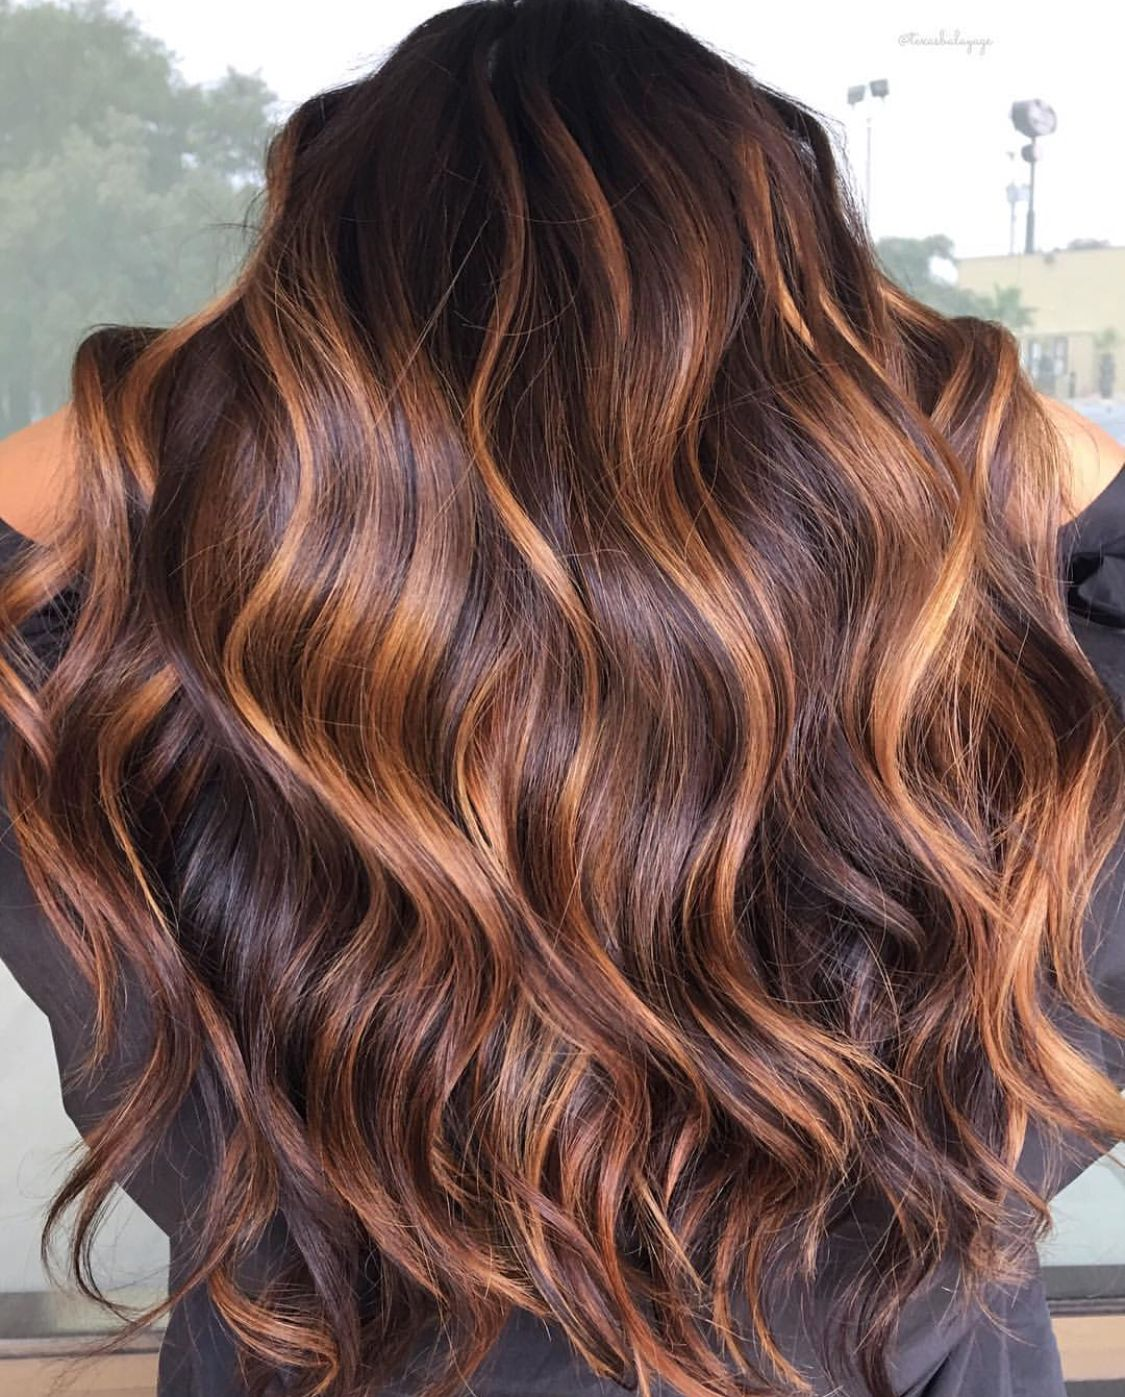 Fall Color Trend: 68 Warm Balayage Looks - Behindthechair.com Haircolor